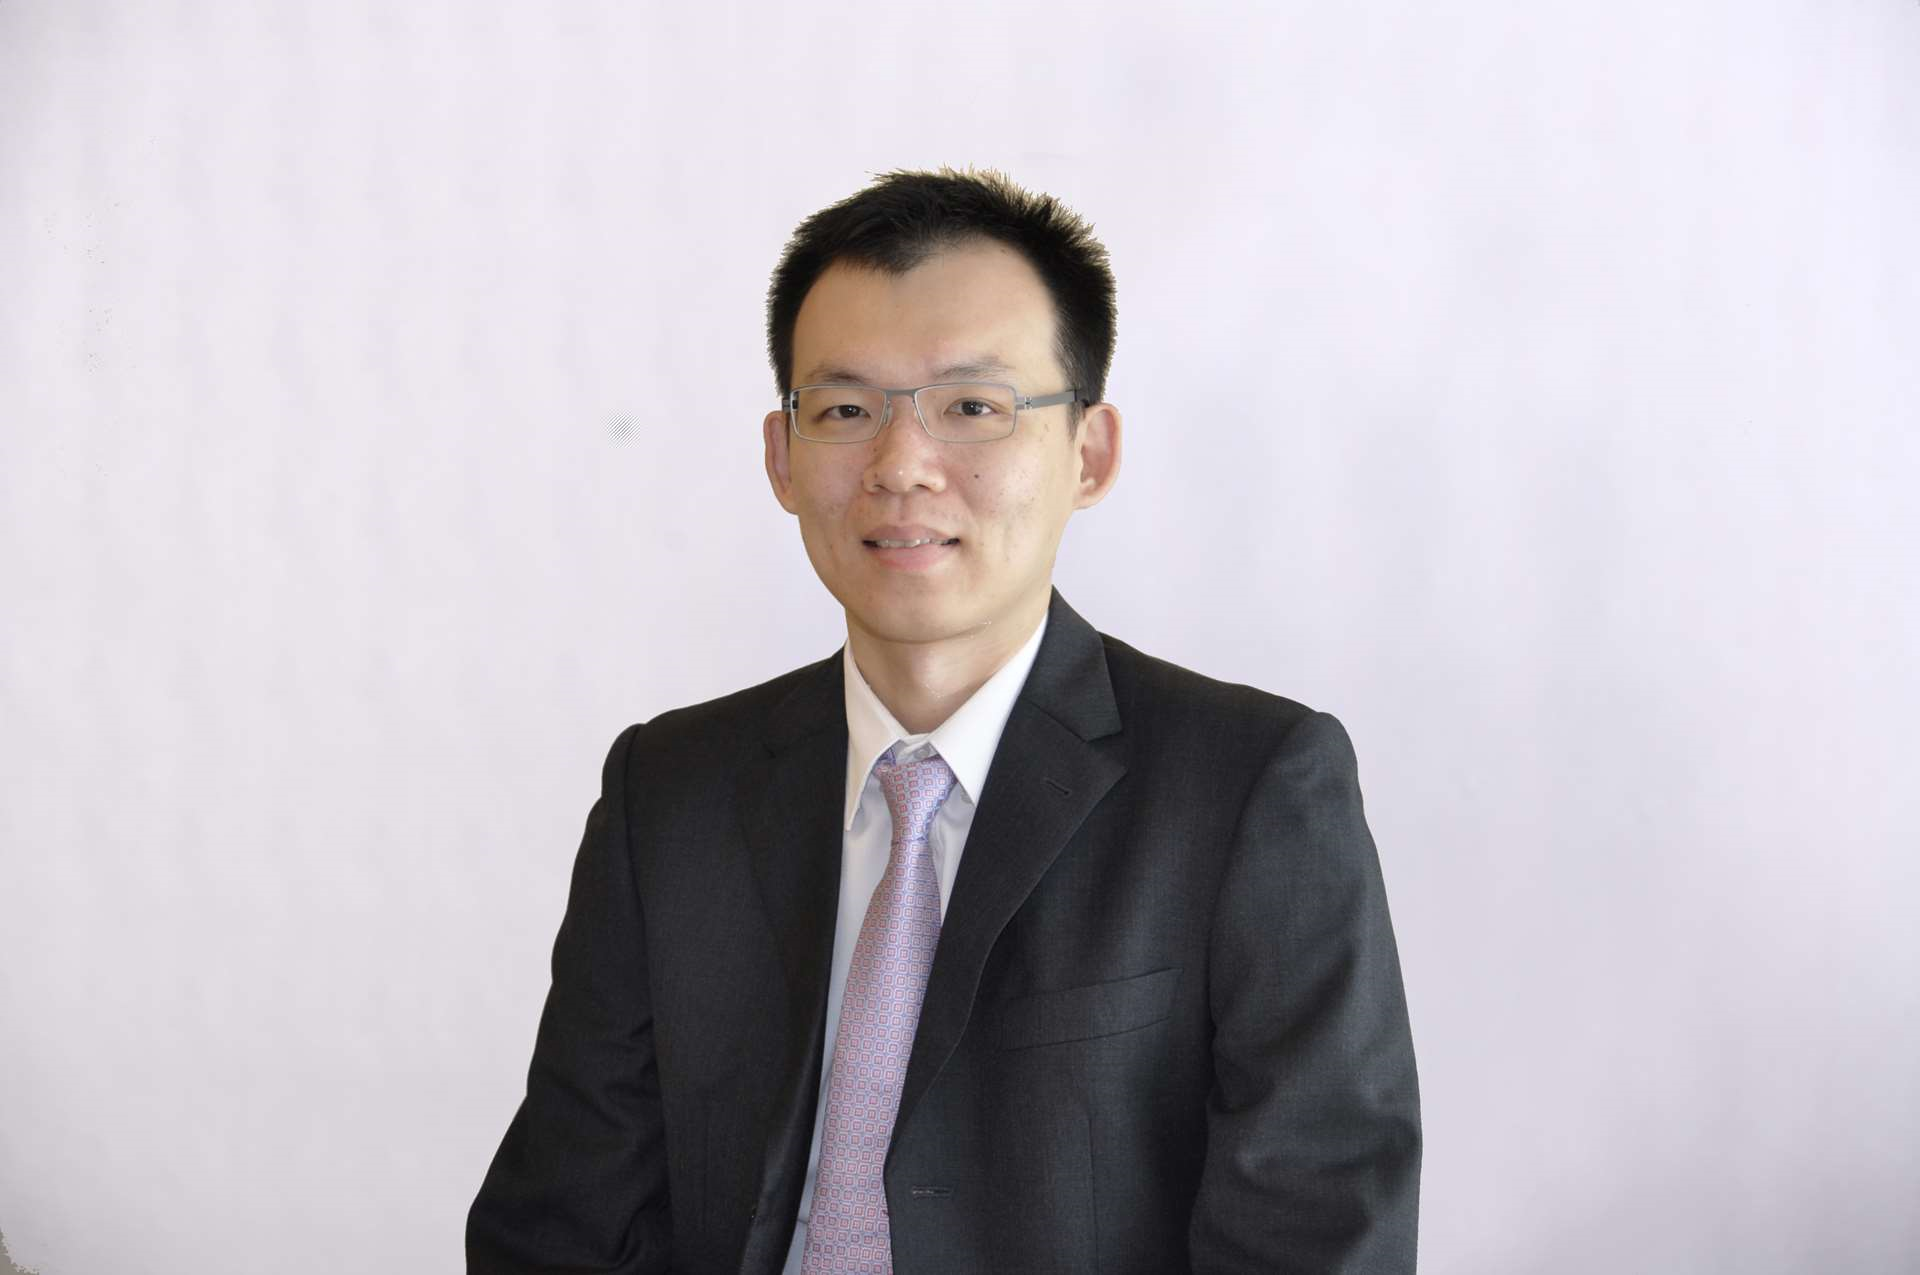 Koo Kian Ming, Executive Director, Tax